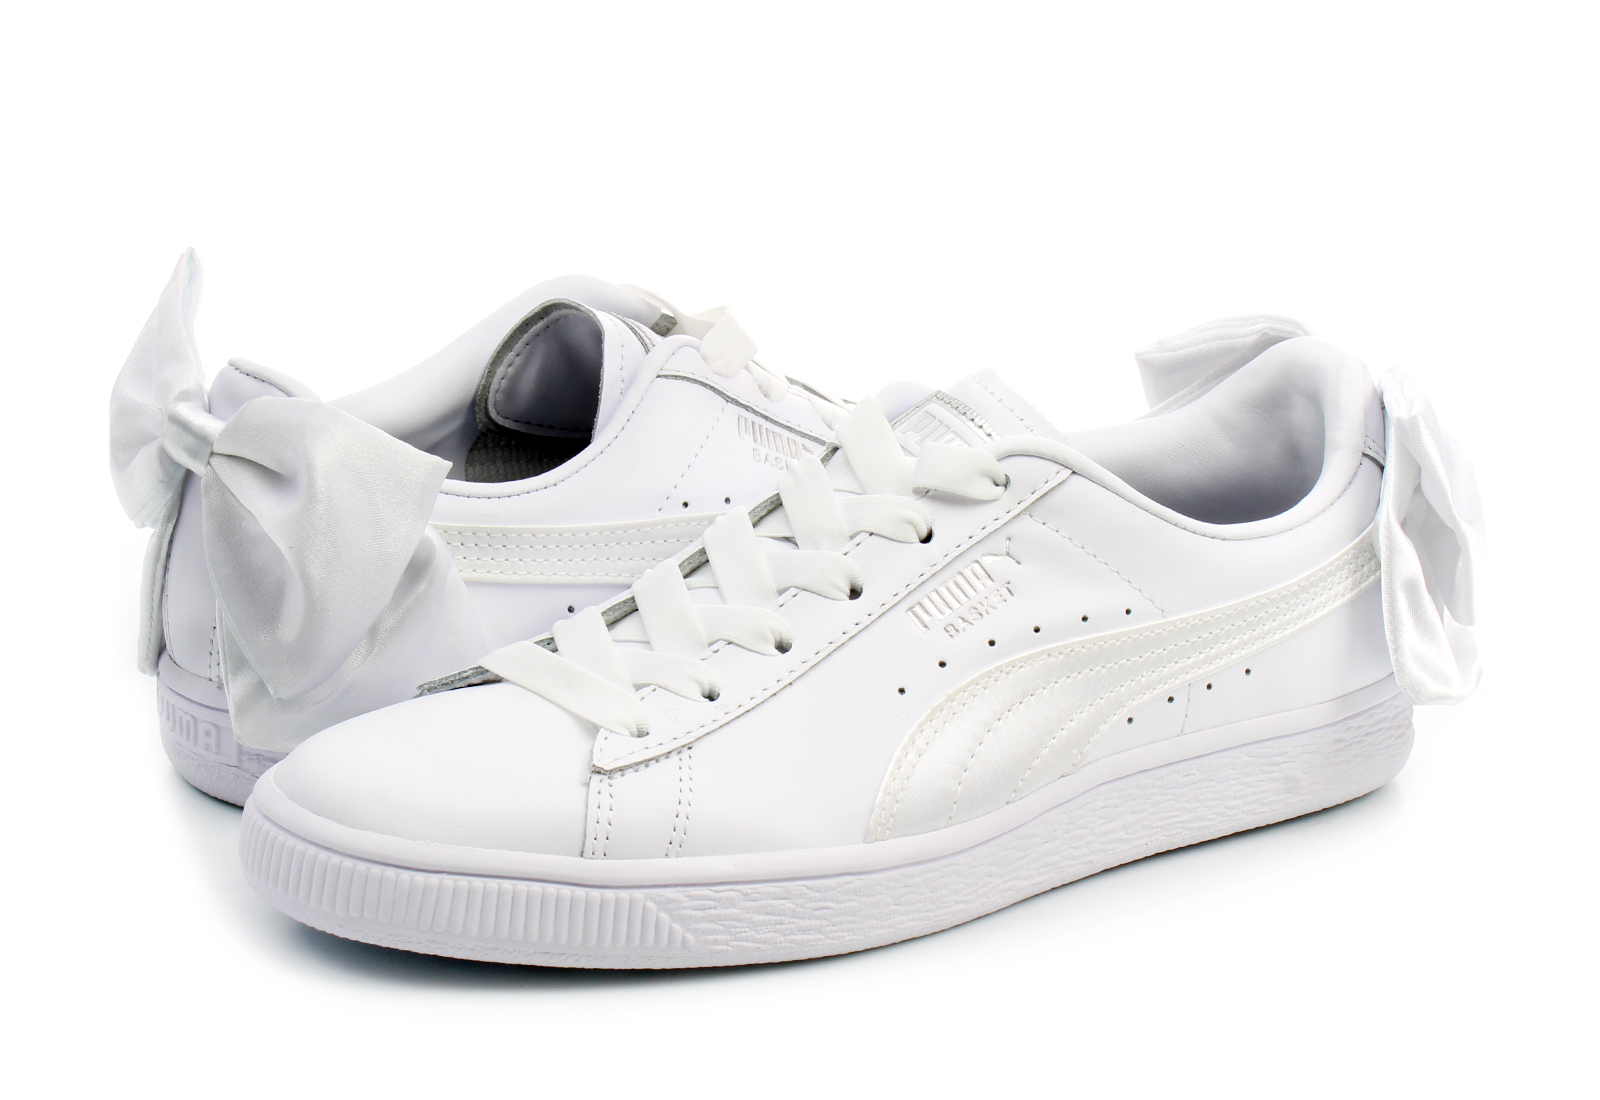 f8a078d3b7b Puma Shoes - Basket Bow Wns - 36731901-wht - Online shop for ...